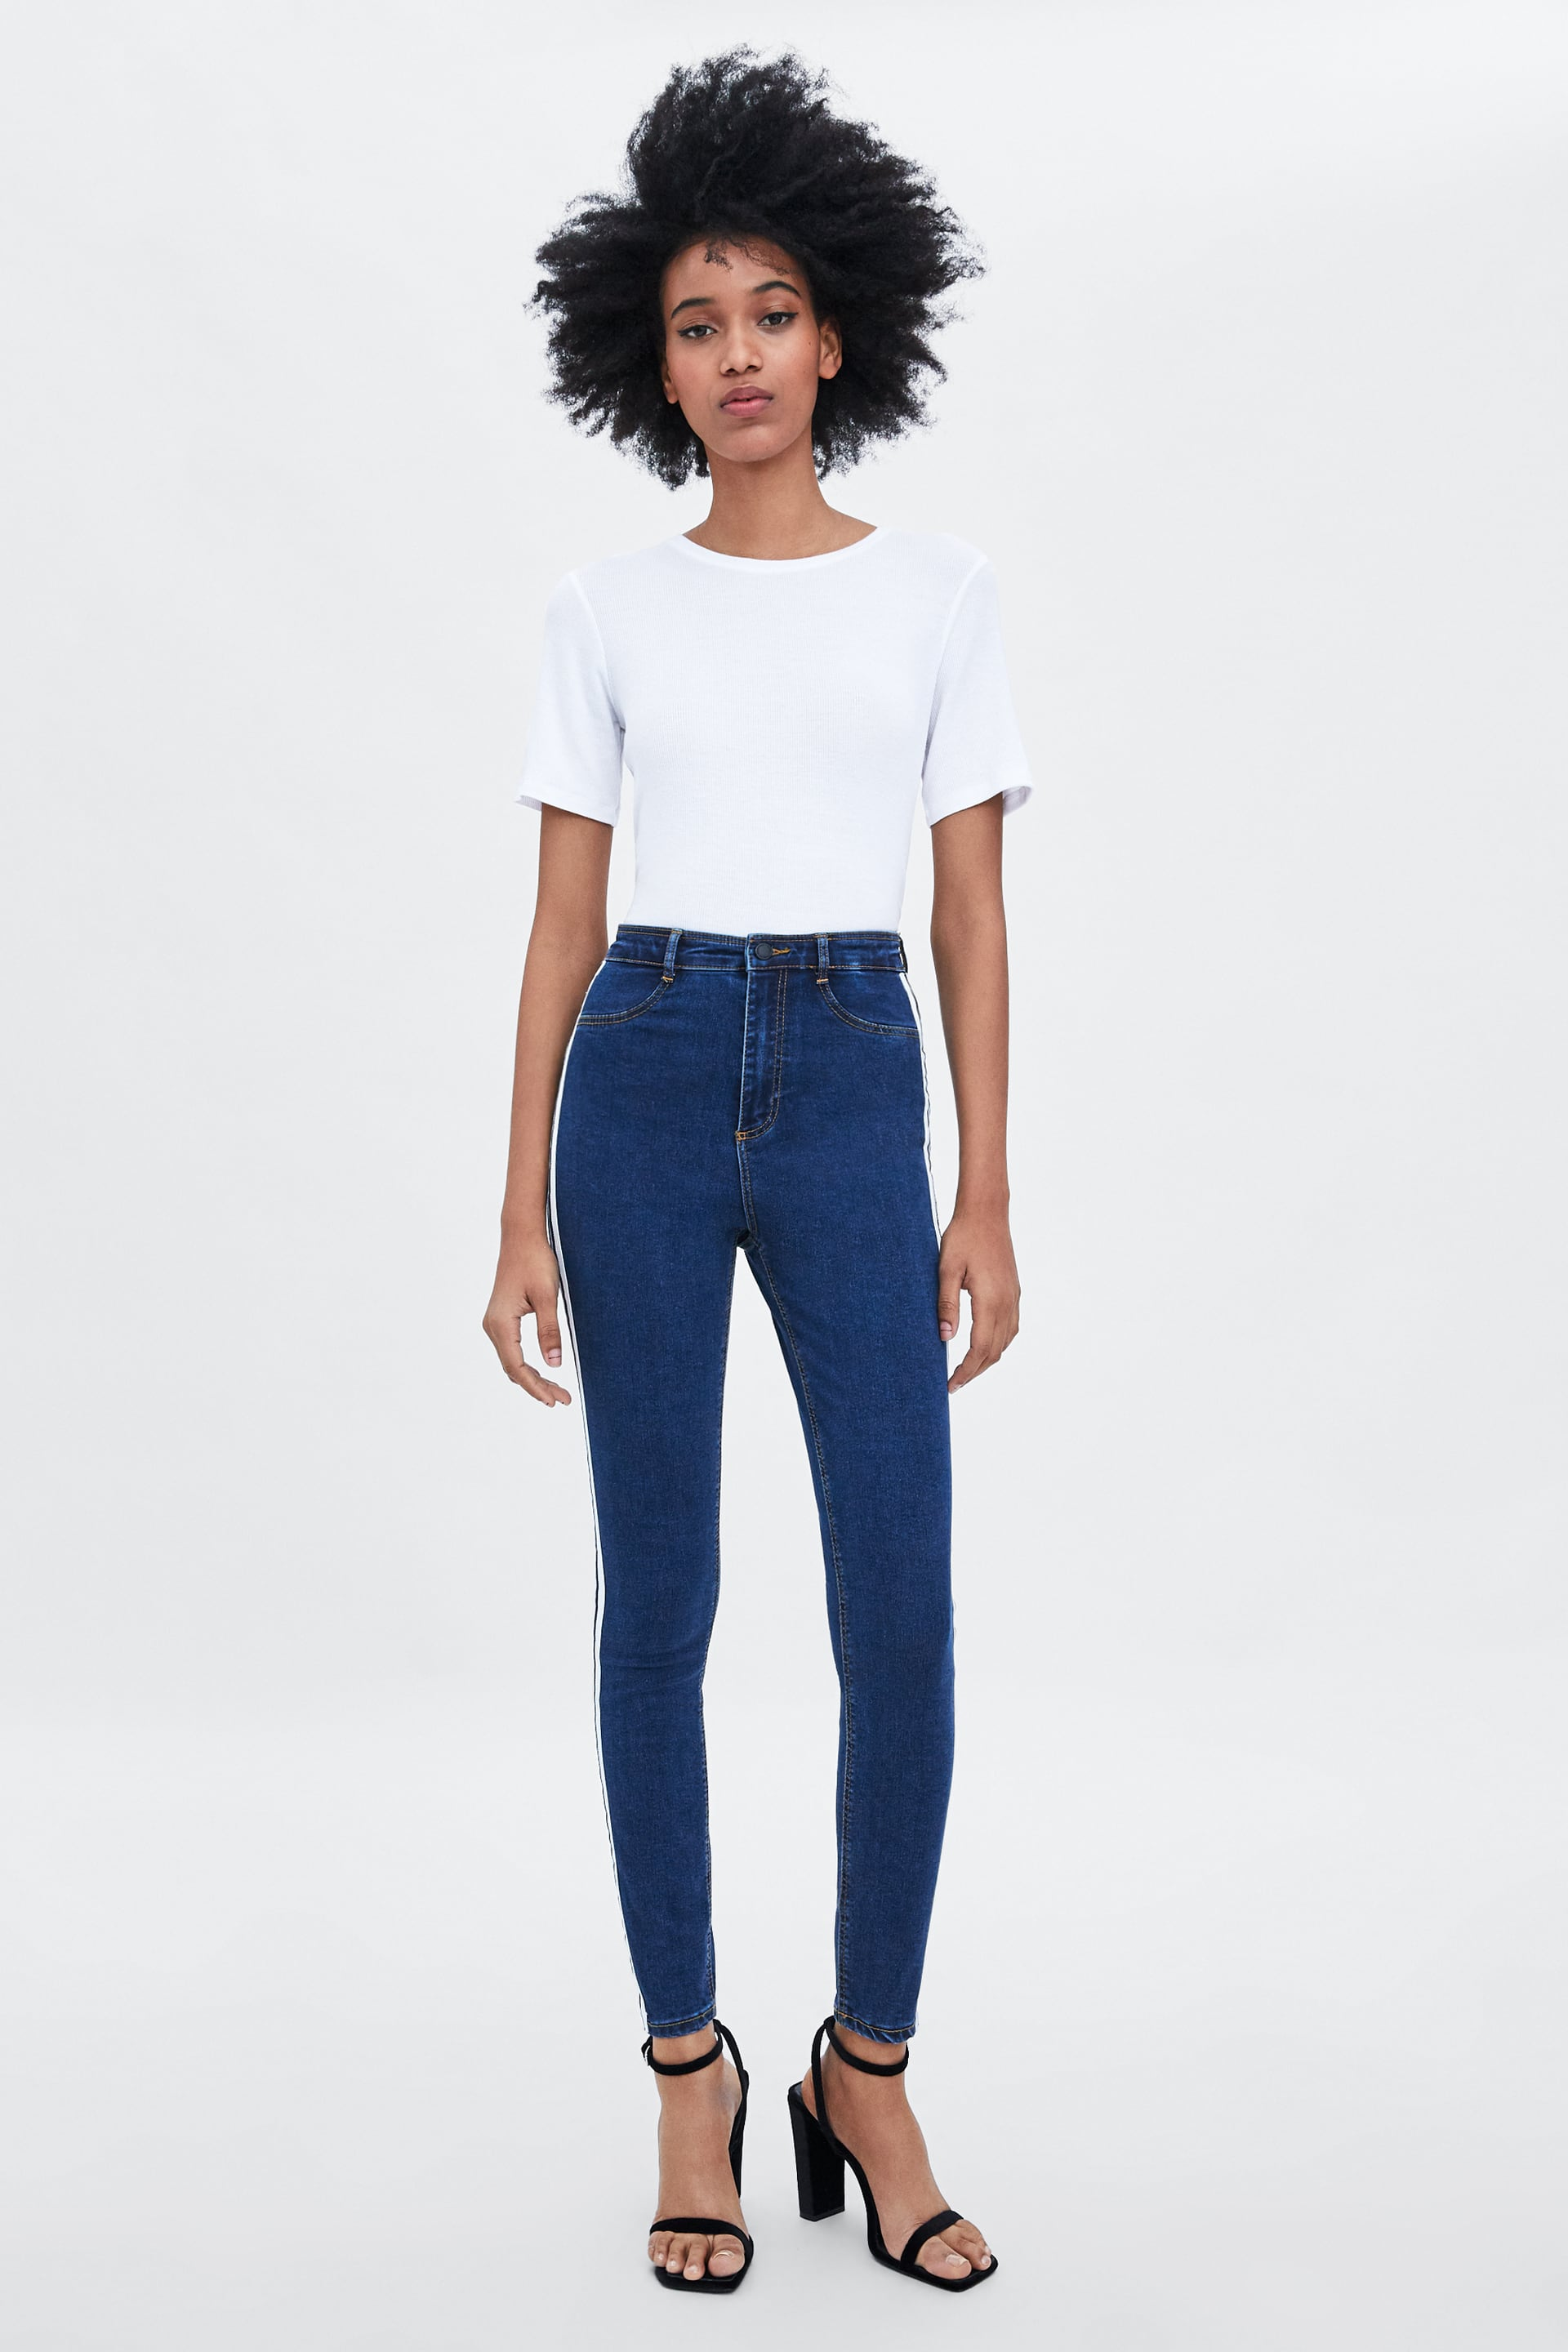 34e30b7e HI - RISE SHAPER JEGGINGS WITH SIDE TAPING-High Waist-JEANS-TRF ...